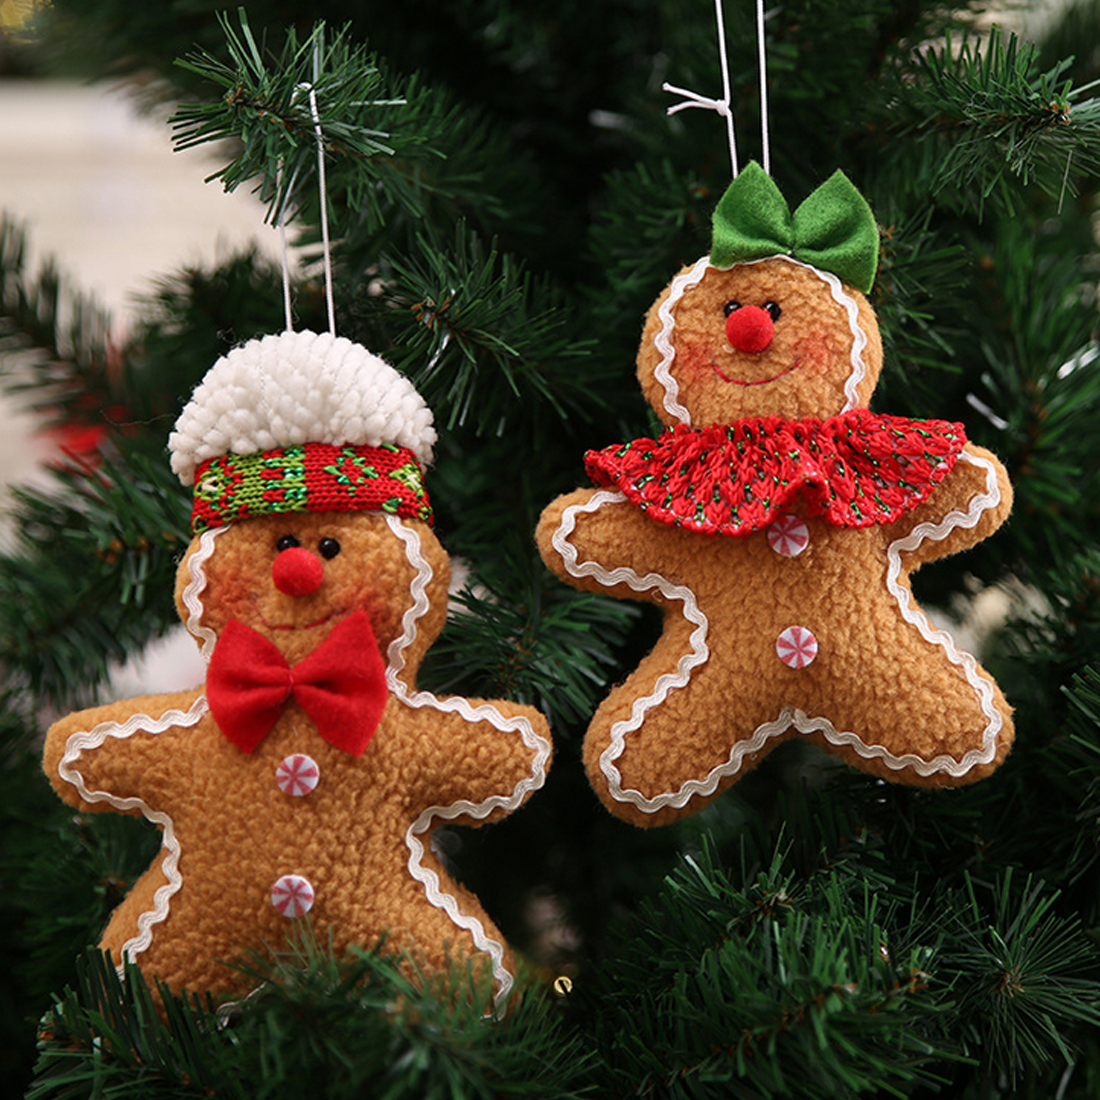 2018 gingerbread man hanging merry christmas ornaments gift ornament christmas tree decoration festival party supplies in pendant drop ornaments from home - Gingerbread Christmas Tree Decorations